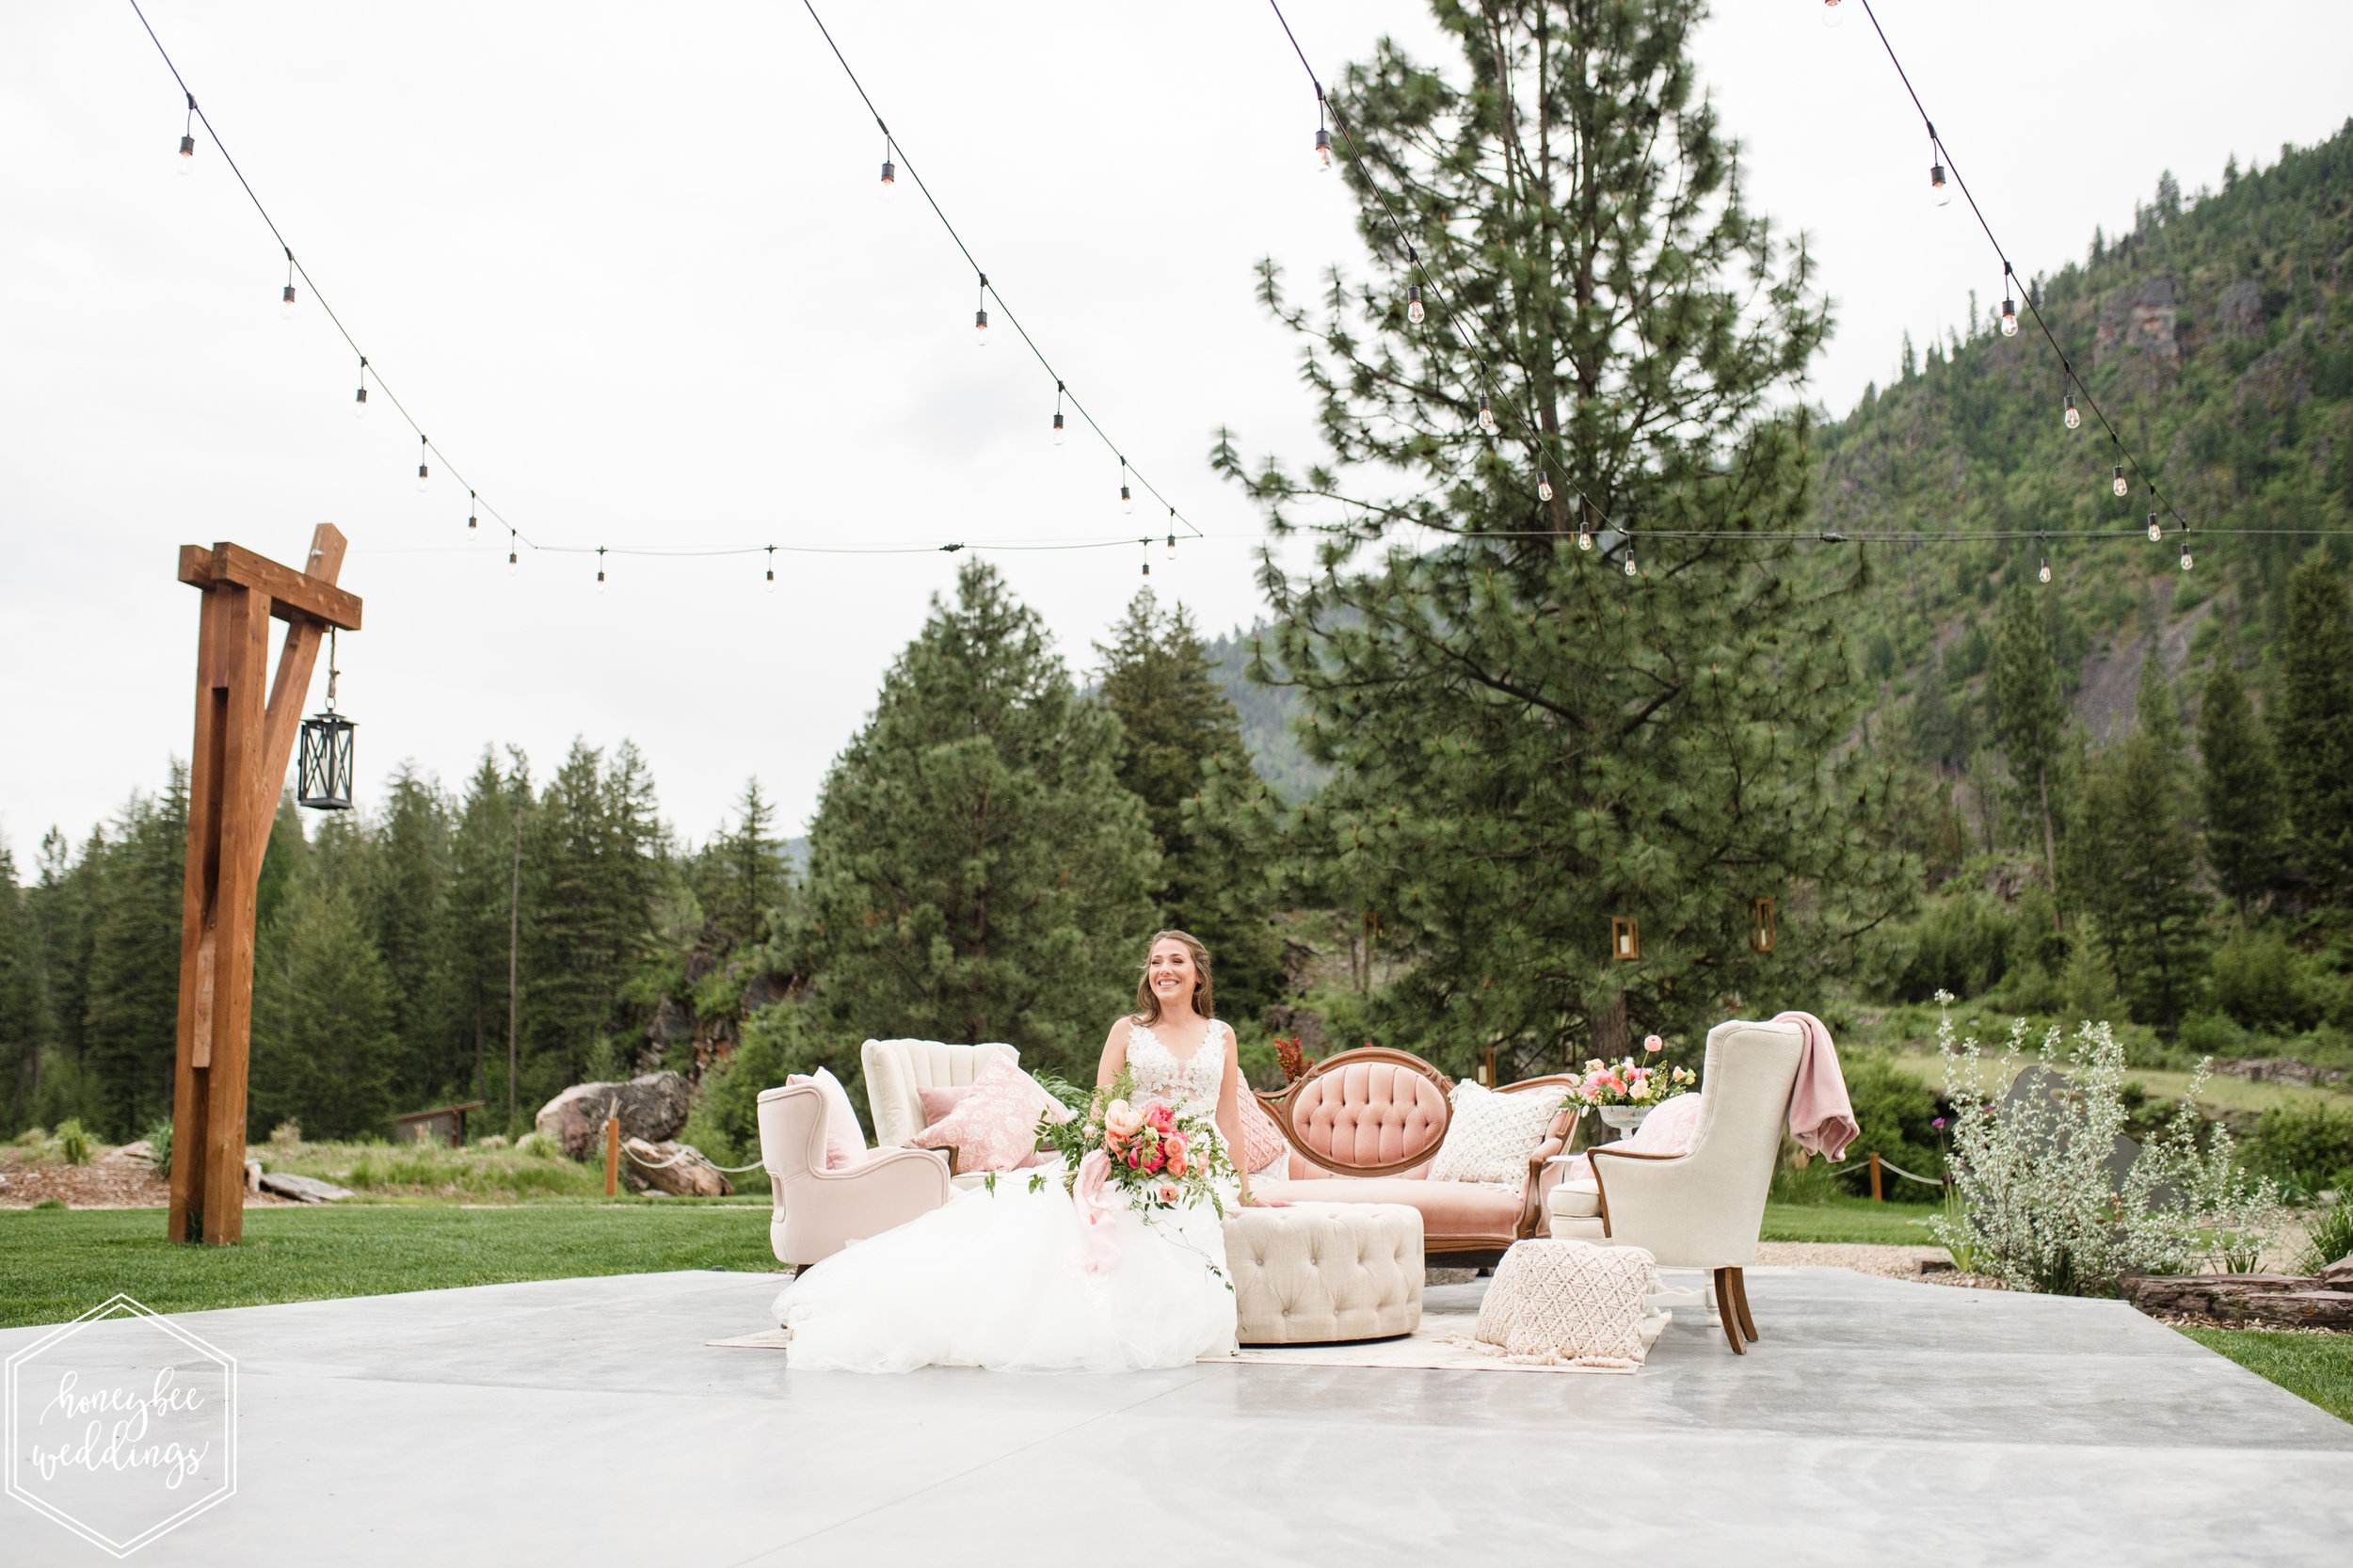 097Coral Mountain Wedding at White Raven_Honeybee Weddings_May 23, 2019-329.jpg